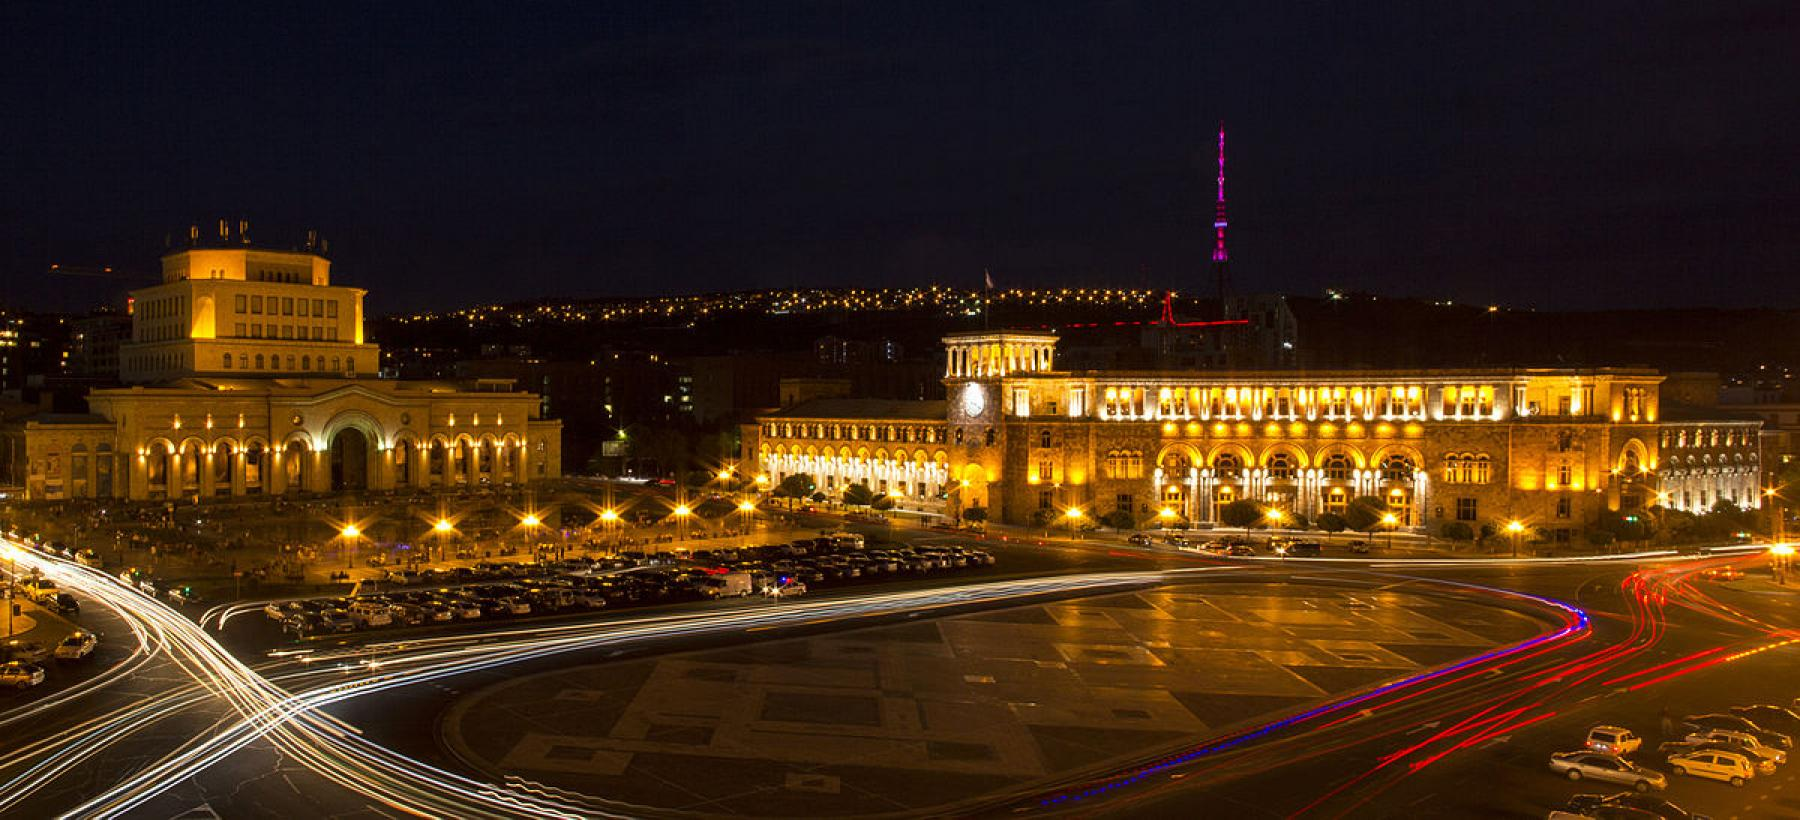 Journey to lands of beautiful nature and ancient civilization - Caucasia starting at Yerevan, Armenia